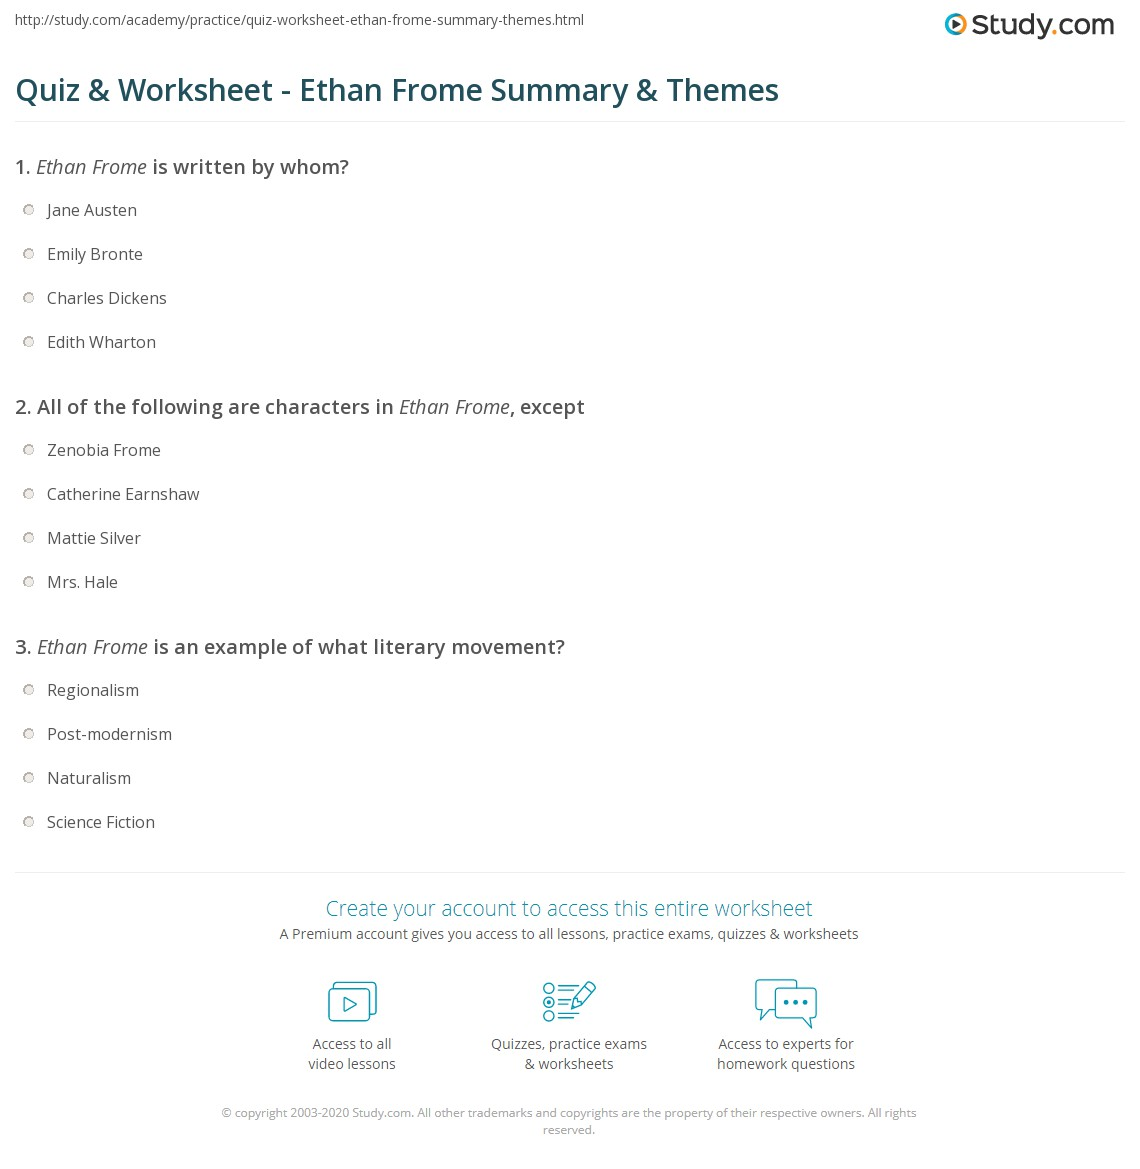 quiz worksheet ethan frome summary themes com print ethan frome summary characters setting themes worksheet